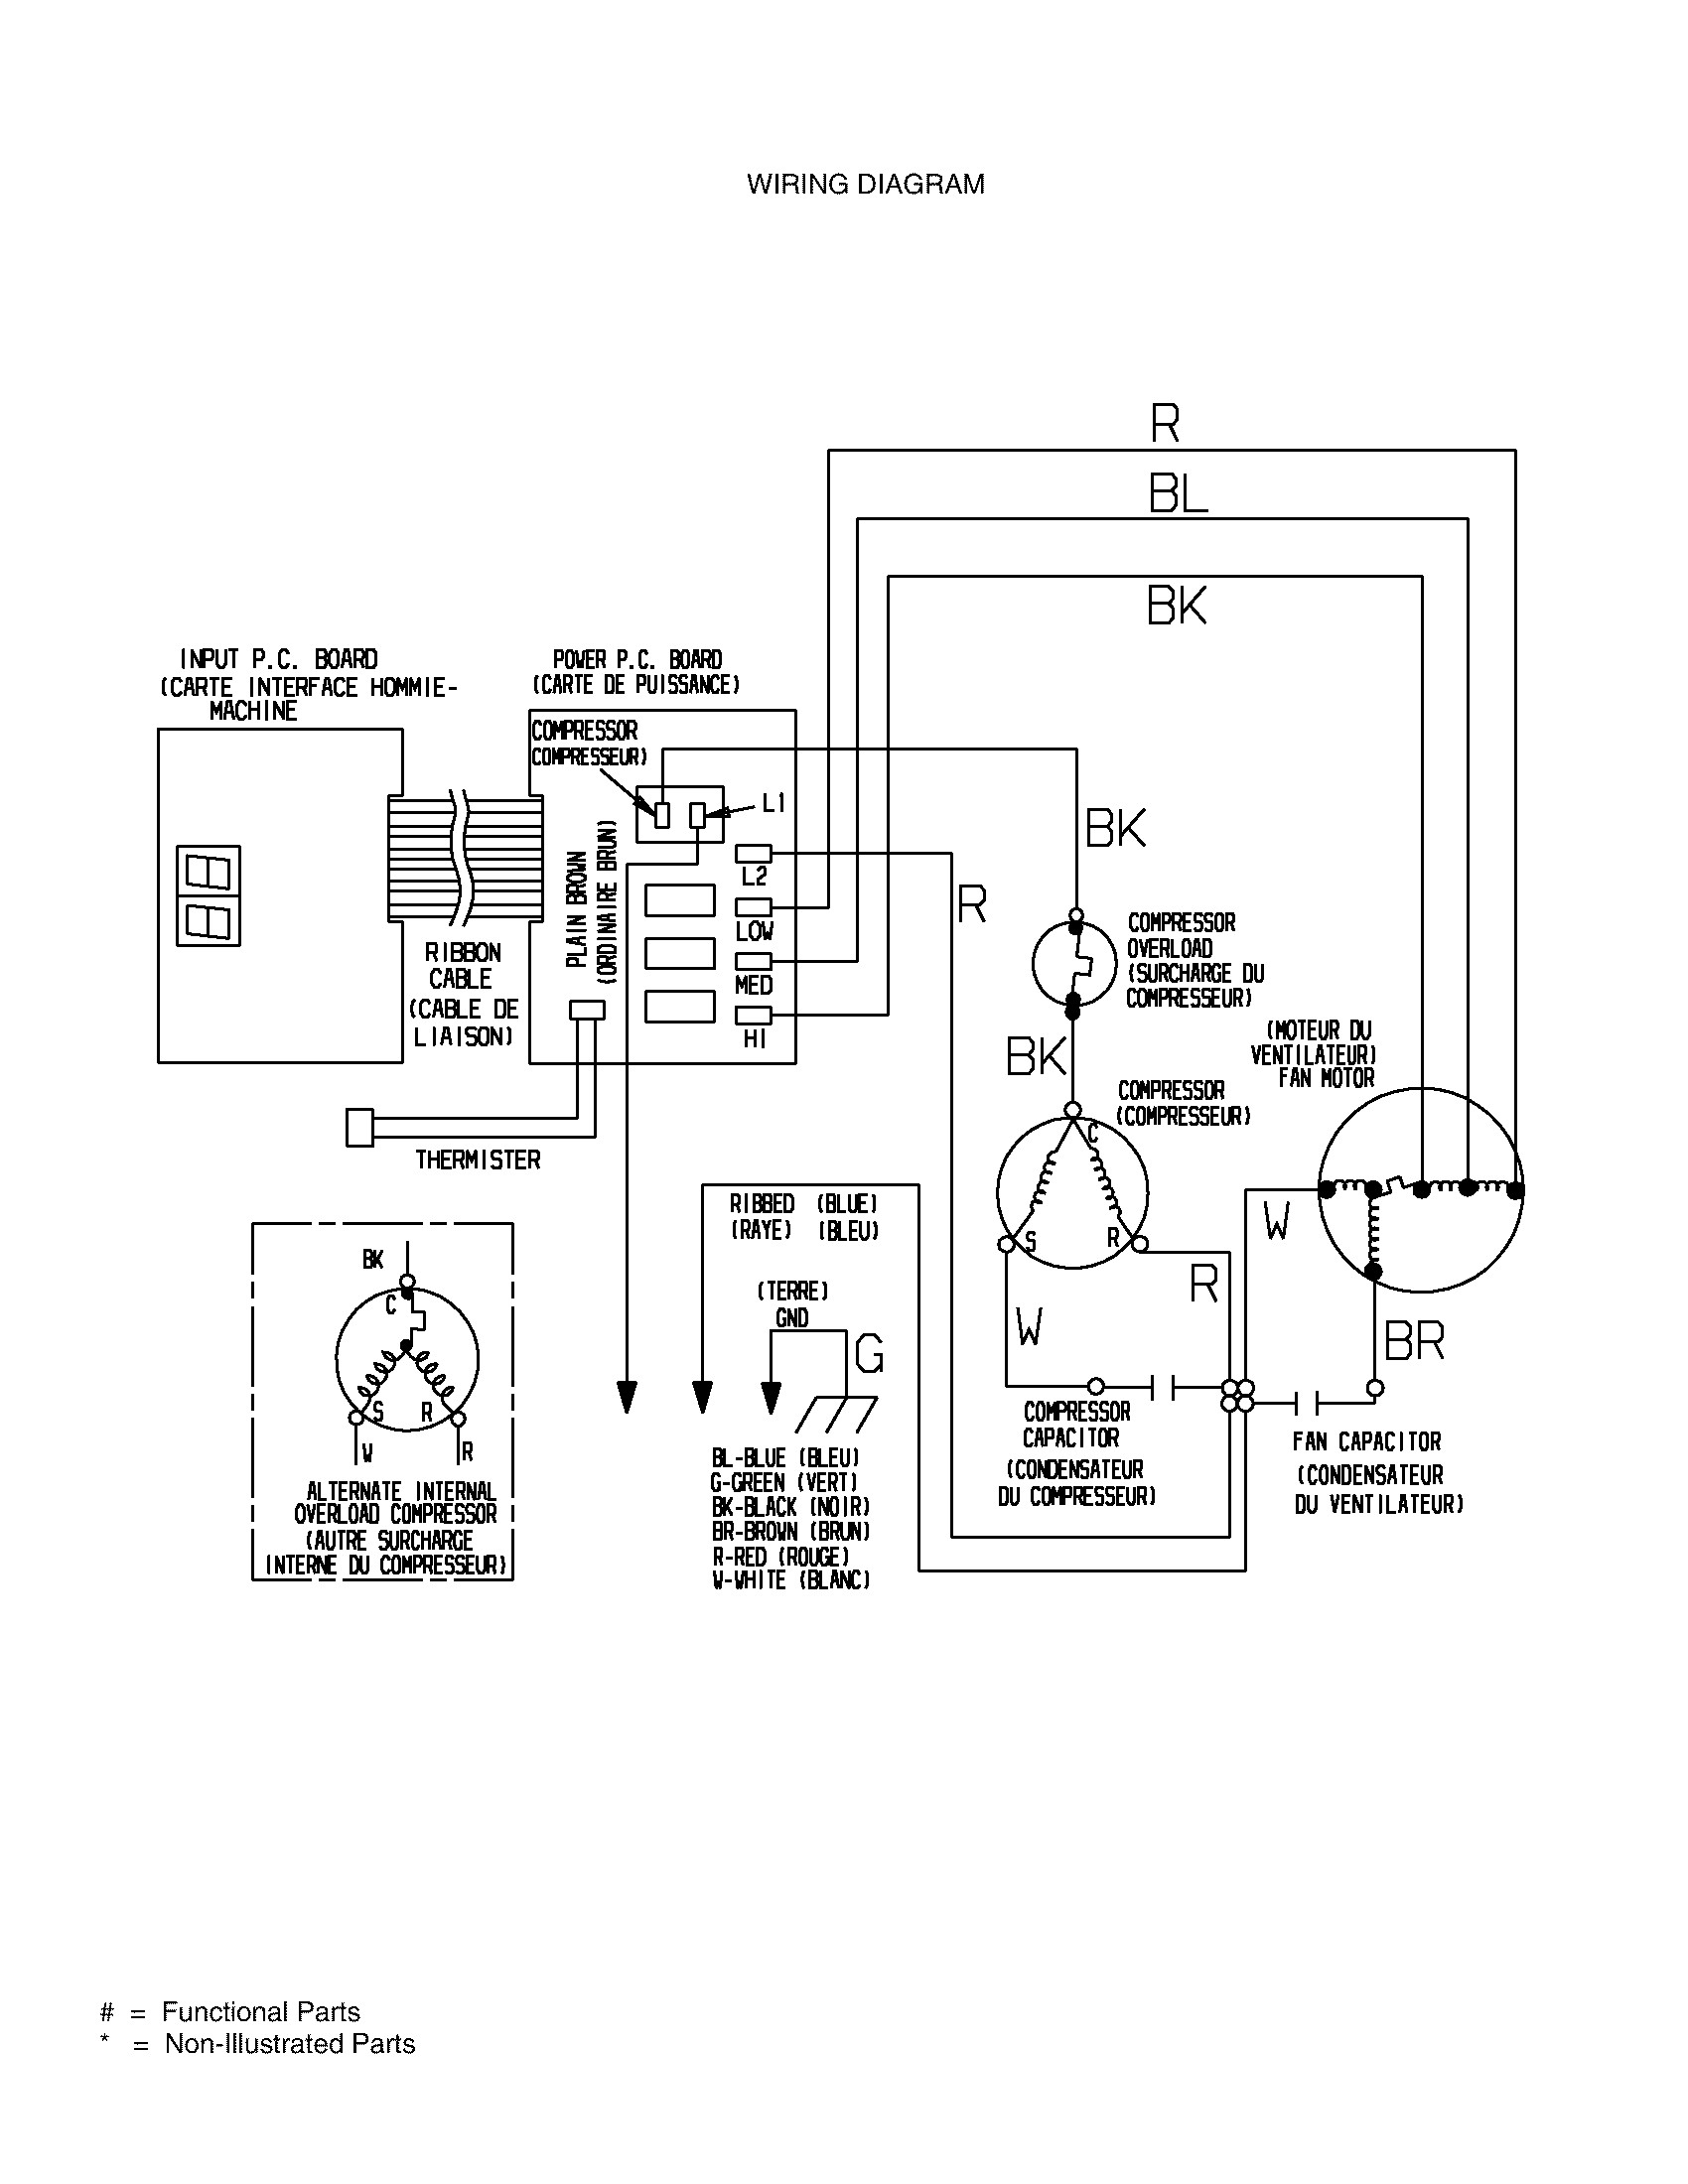 Carrier Air Conditioner Wiring Diagram Coleman Rv Air Conditioner Wiring Diagram – Wire Diagram Of Carrier Air Conditioner Wiring Diagram